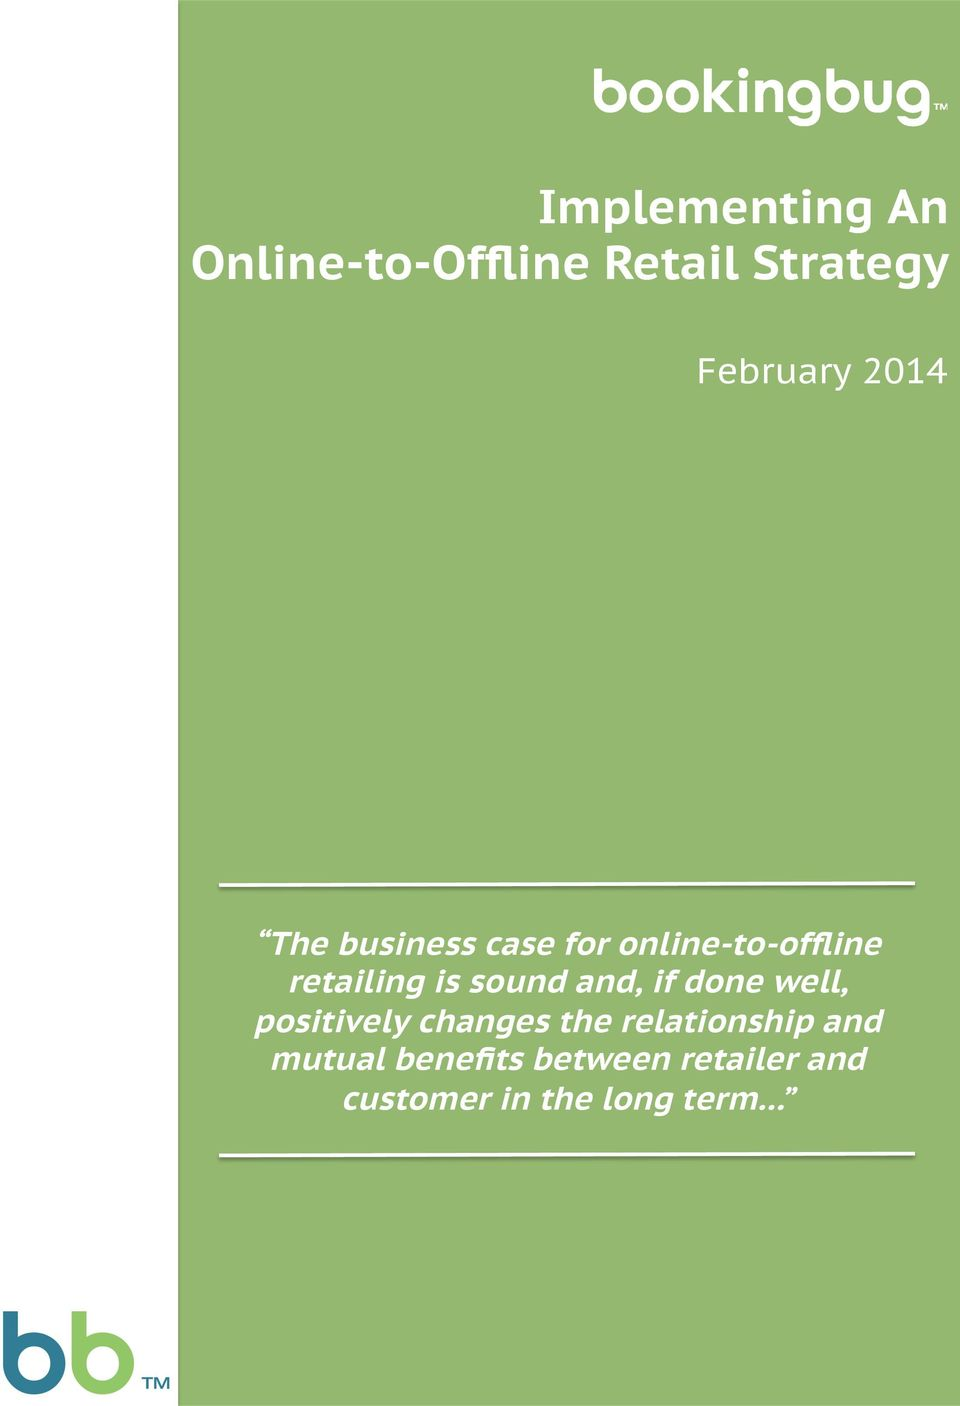 The business case for online-to-offline retailing is sound